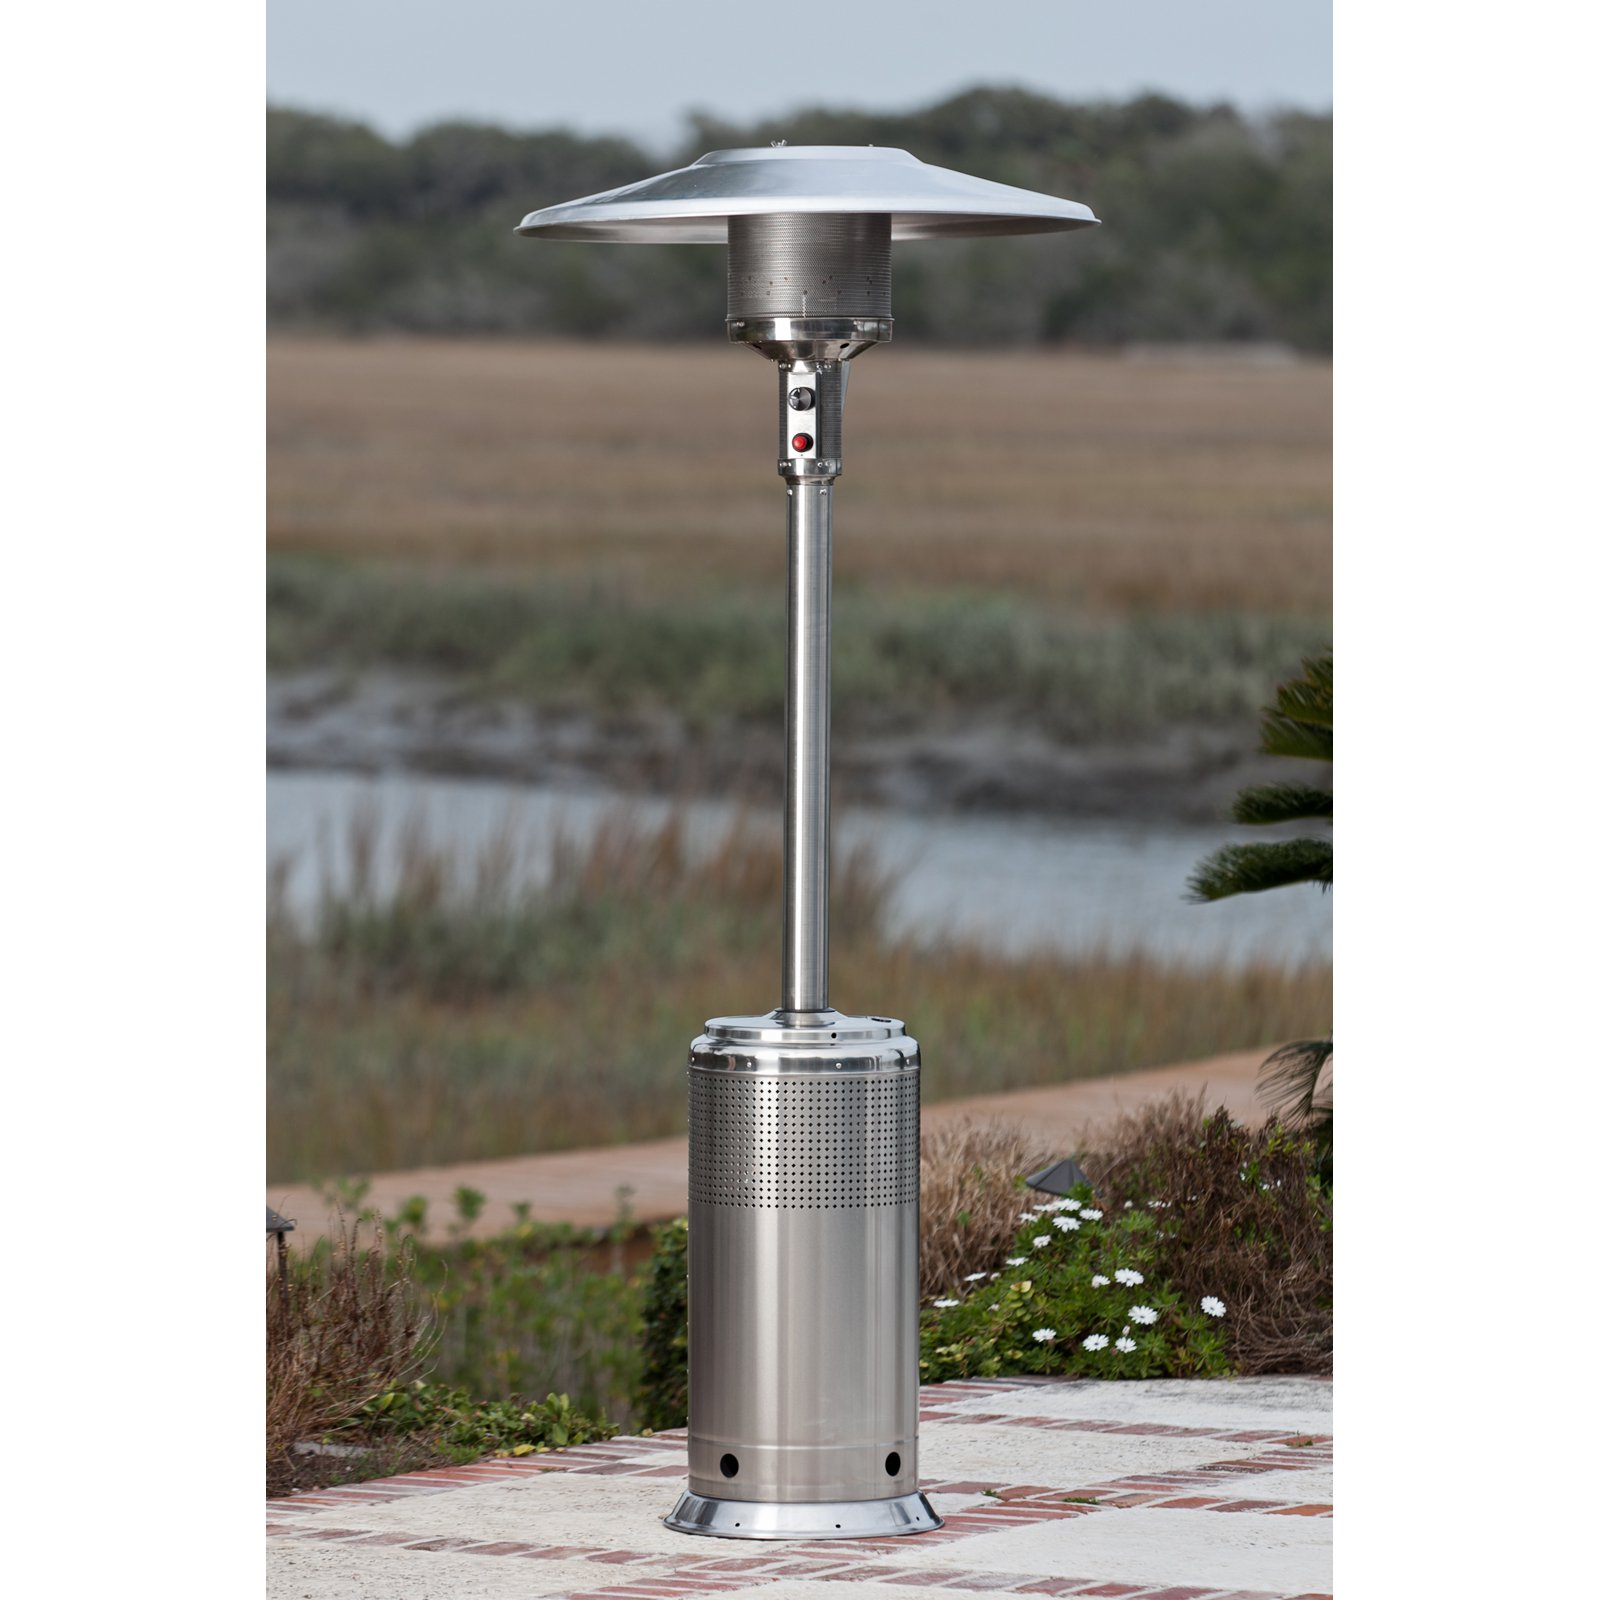 Fire Sense Stainless Steel Pro Series Patio Heater by Well Traveled Living